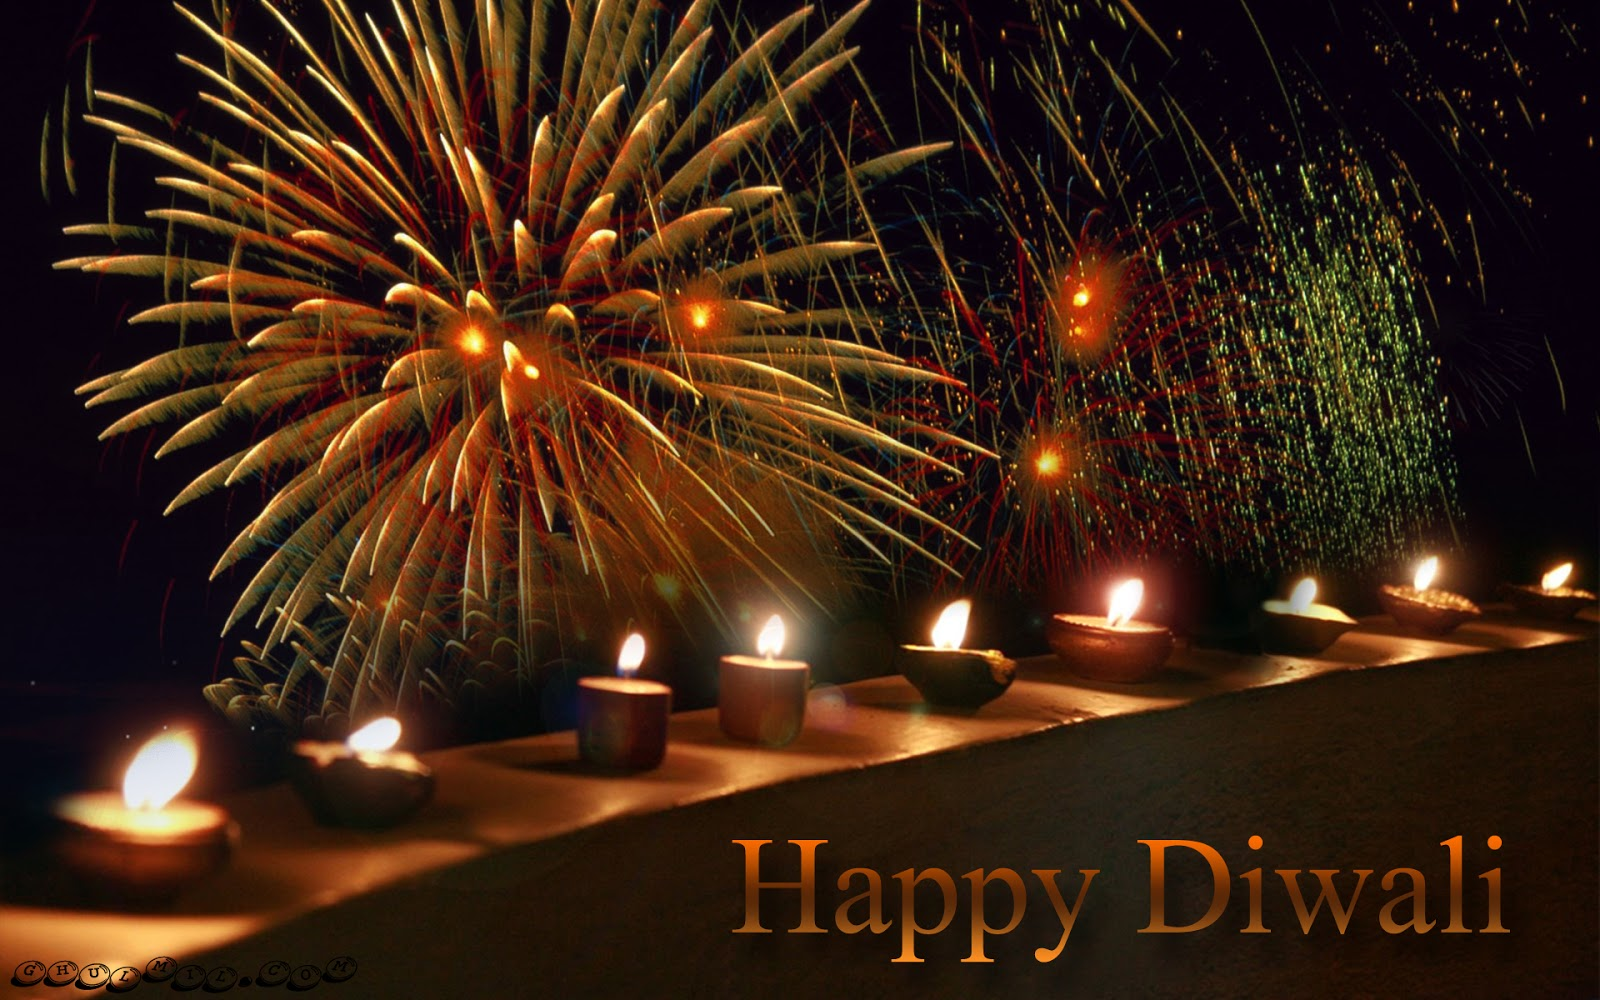 top 10 diwali images, happy diwali wallpaper and diwali pictures